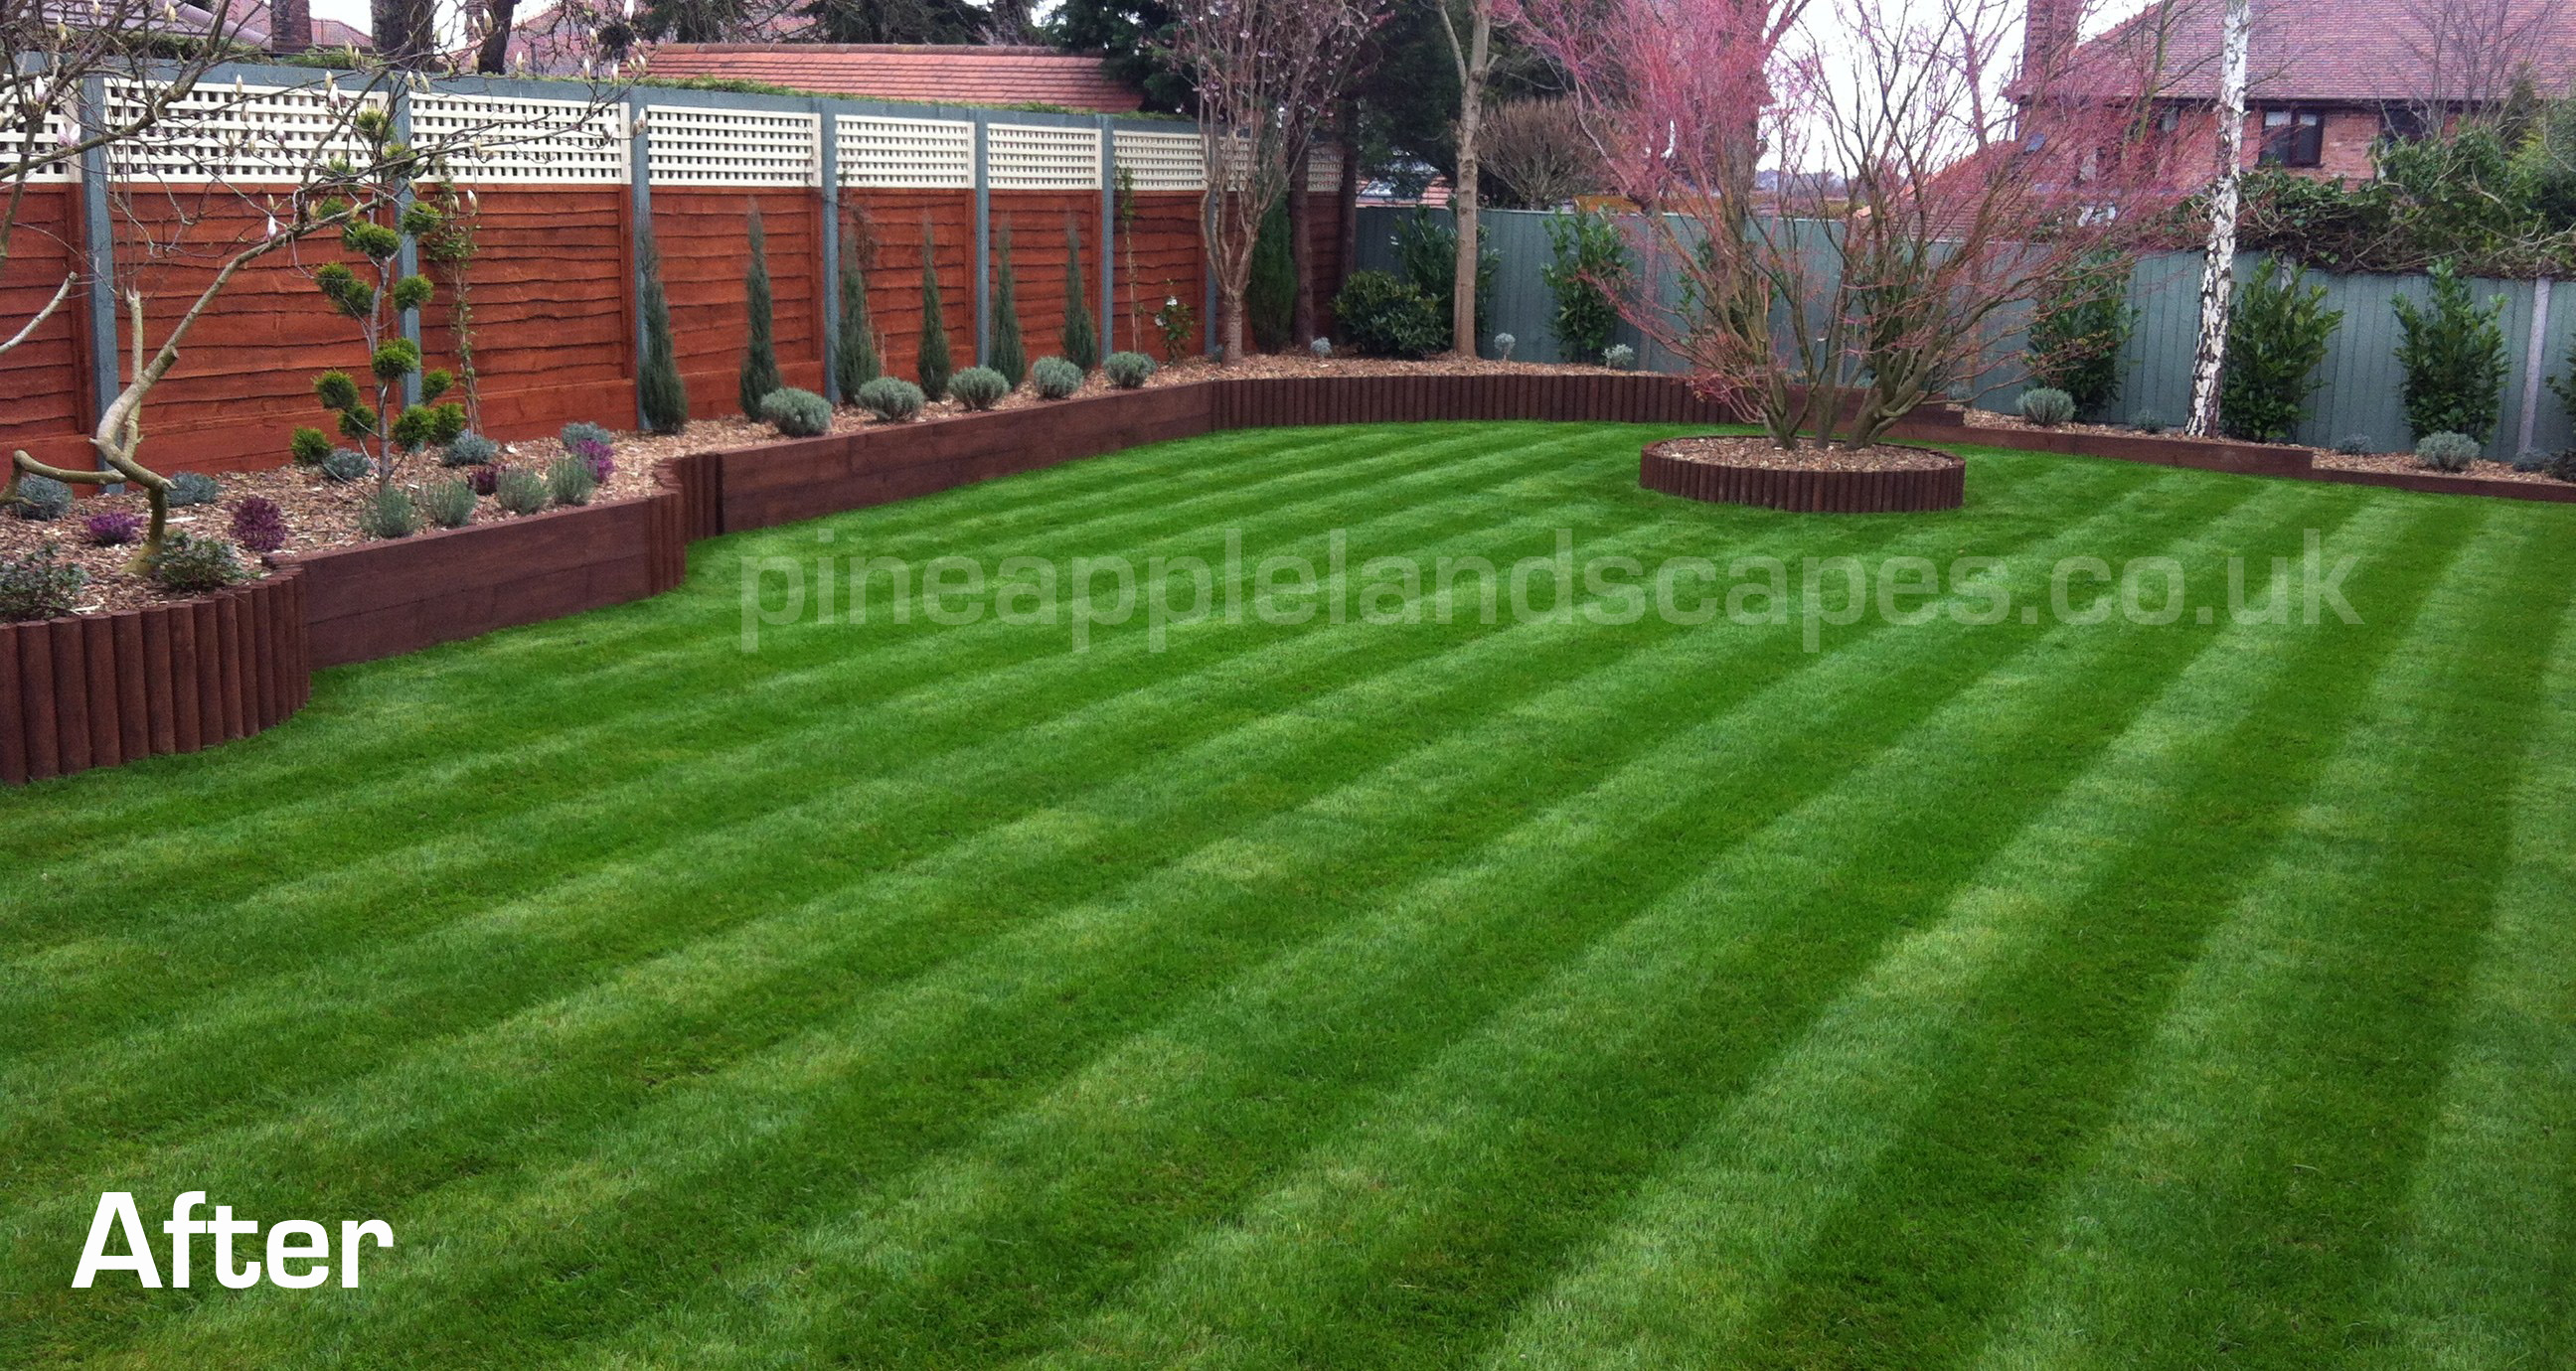 Garden makeover walton heath rd walton warrington for Garden makeover